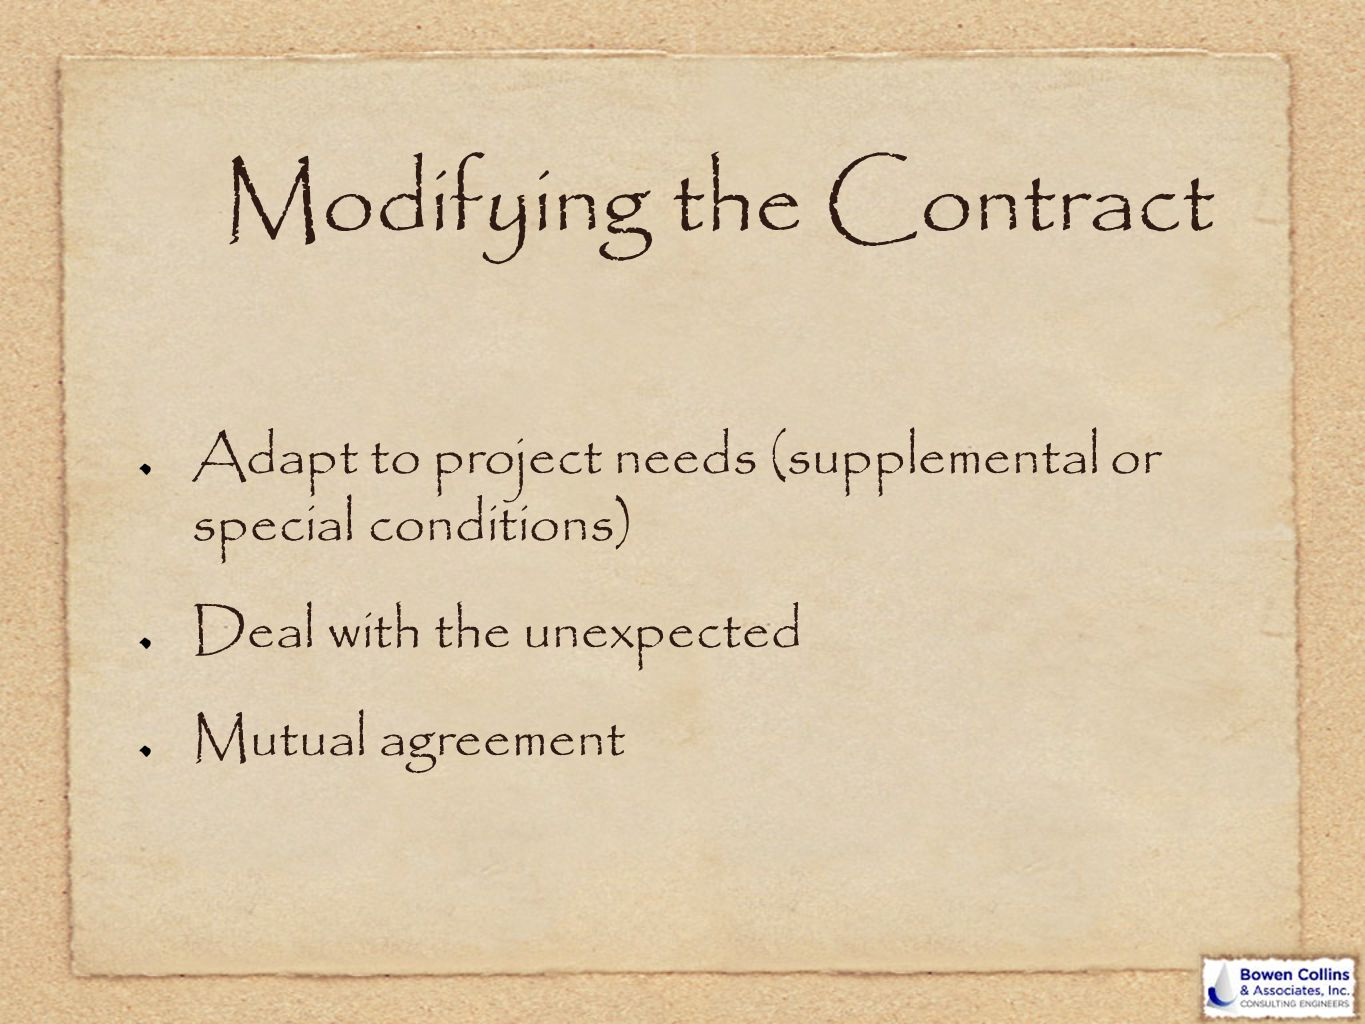 Modifying the Contract